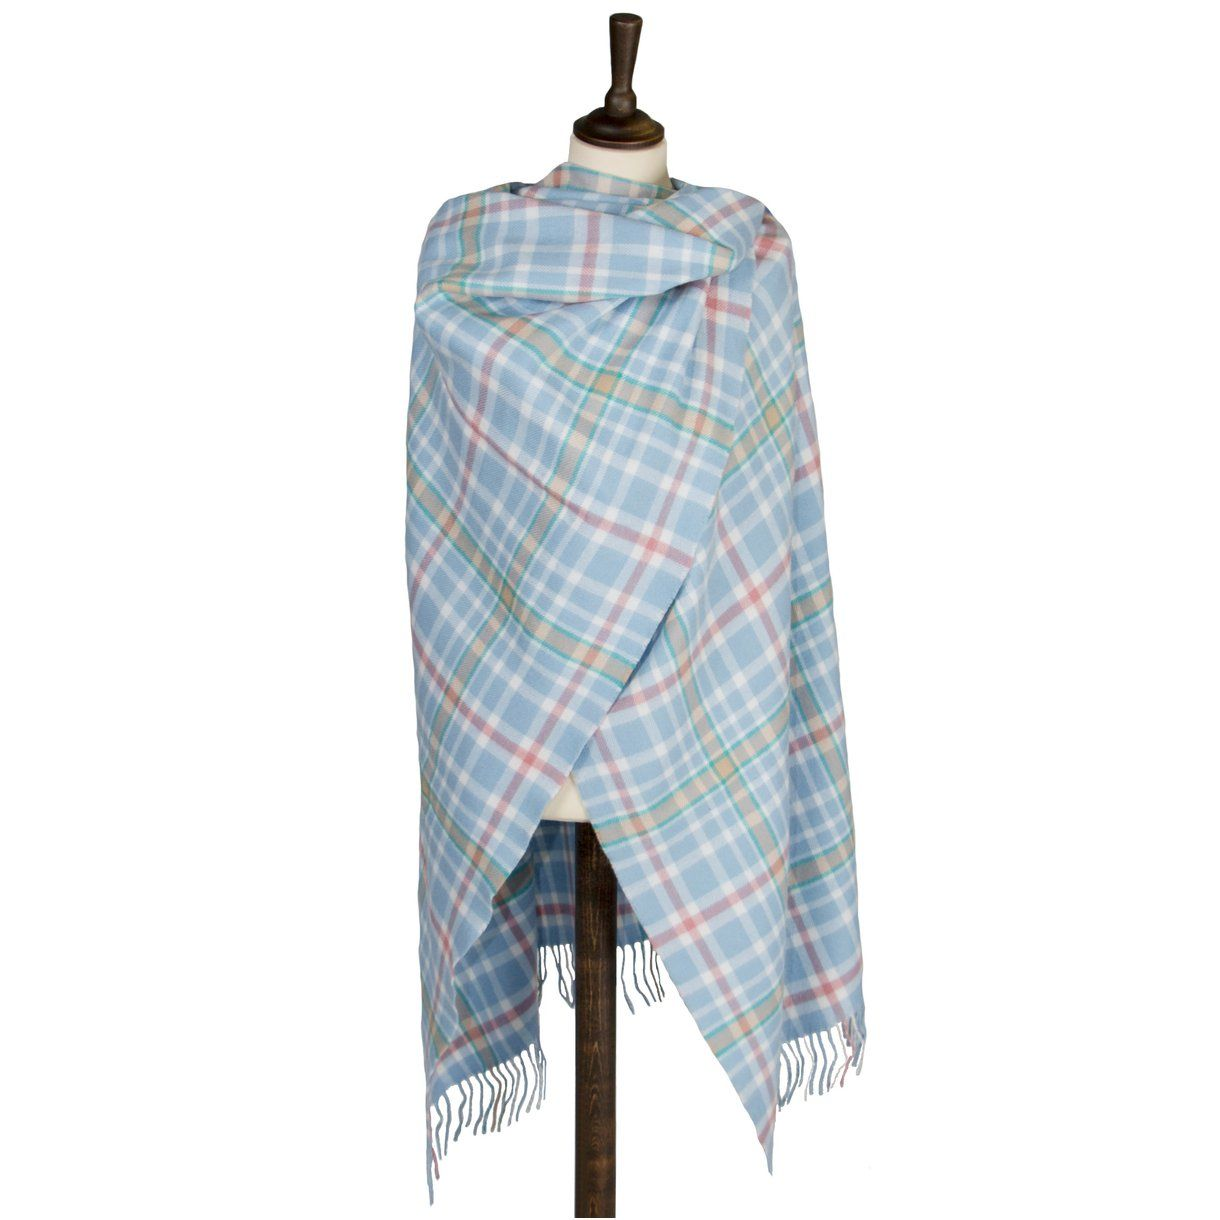 Peter Rabbit Peter Rabbit Tartan Lambswool Serape